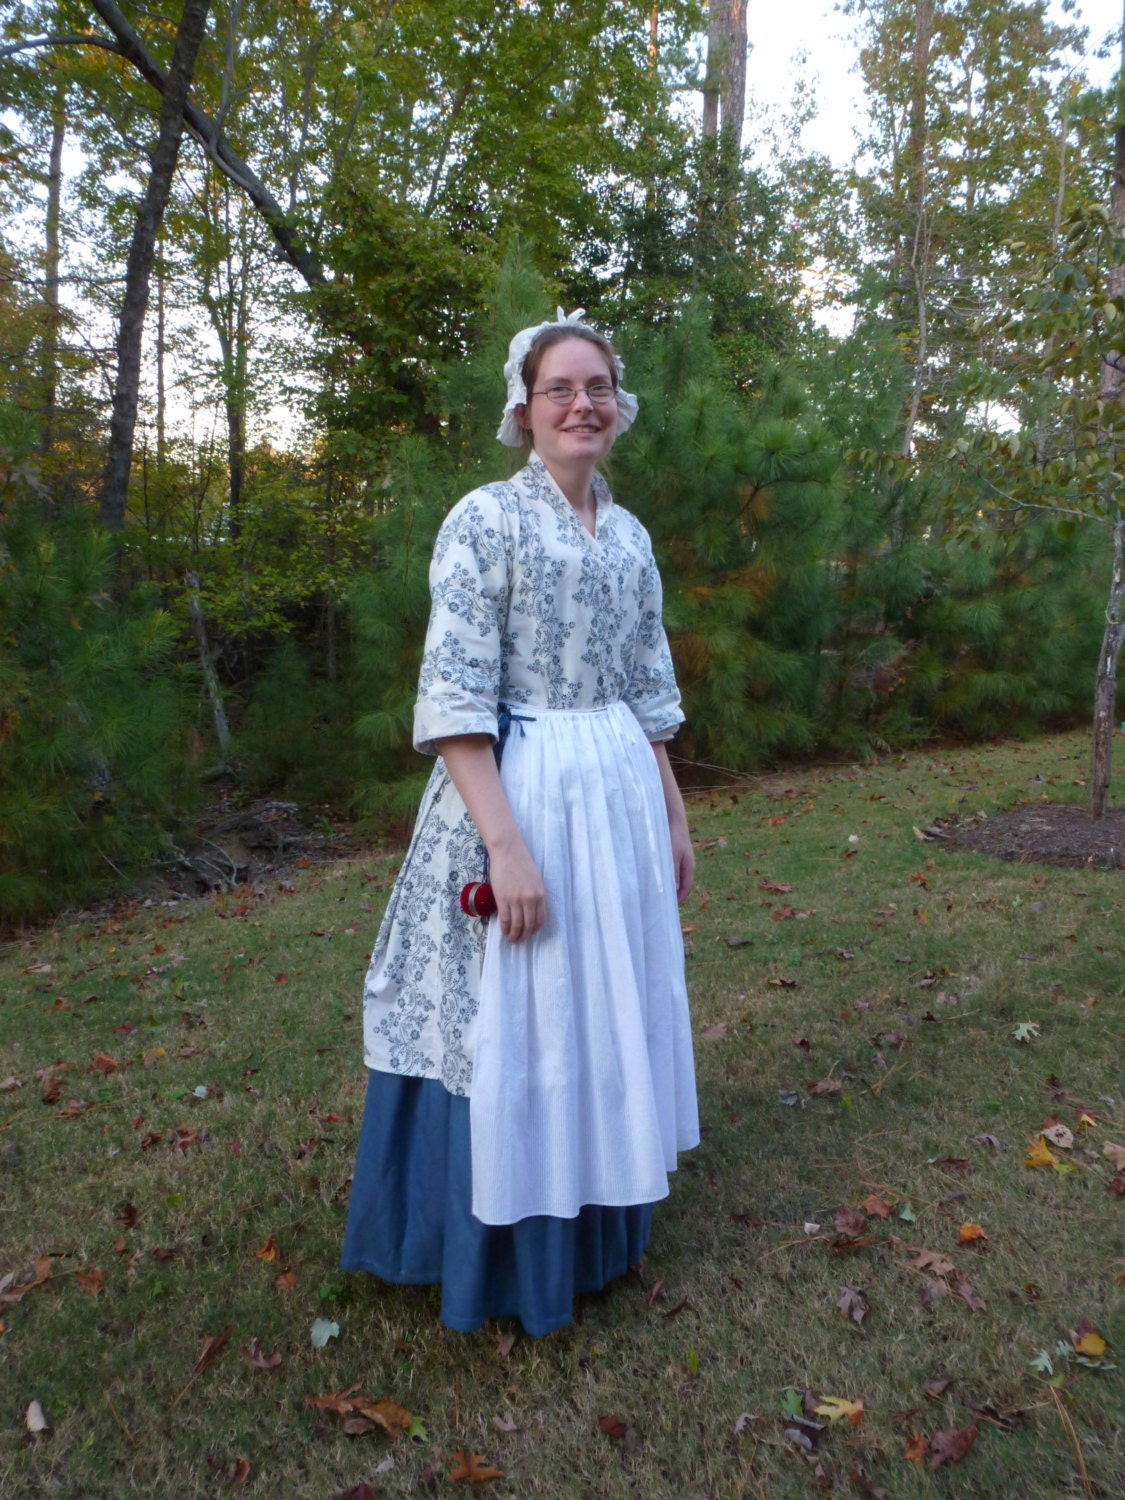 Christmas gown ideas 18th - Custom Order 18th Century Hand Sewn Bedgown For Colonial Rev War Reenacting Or